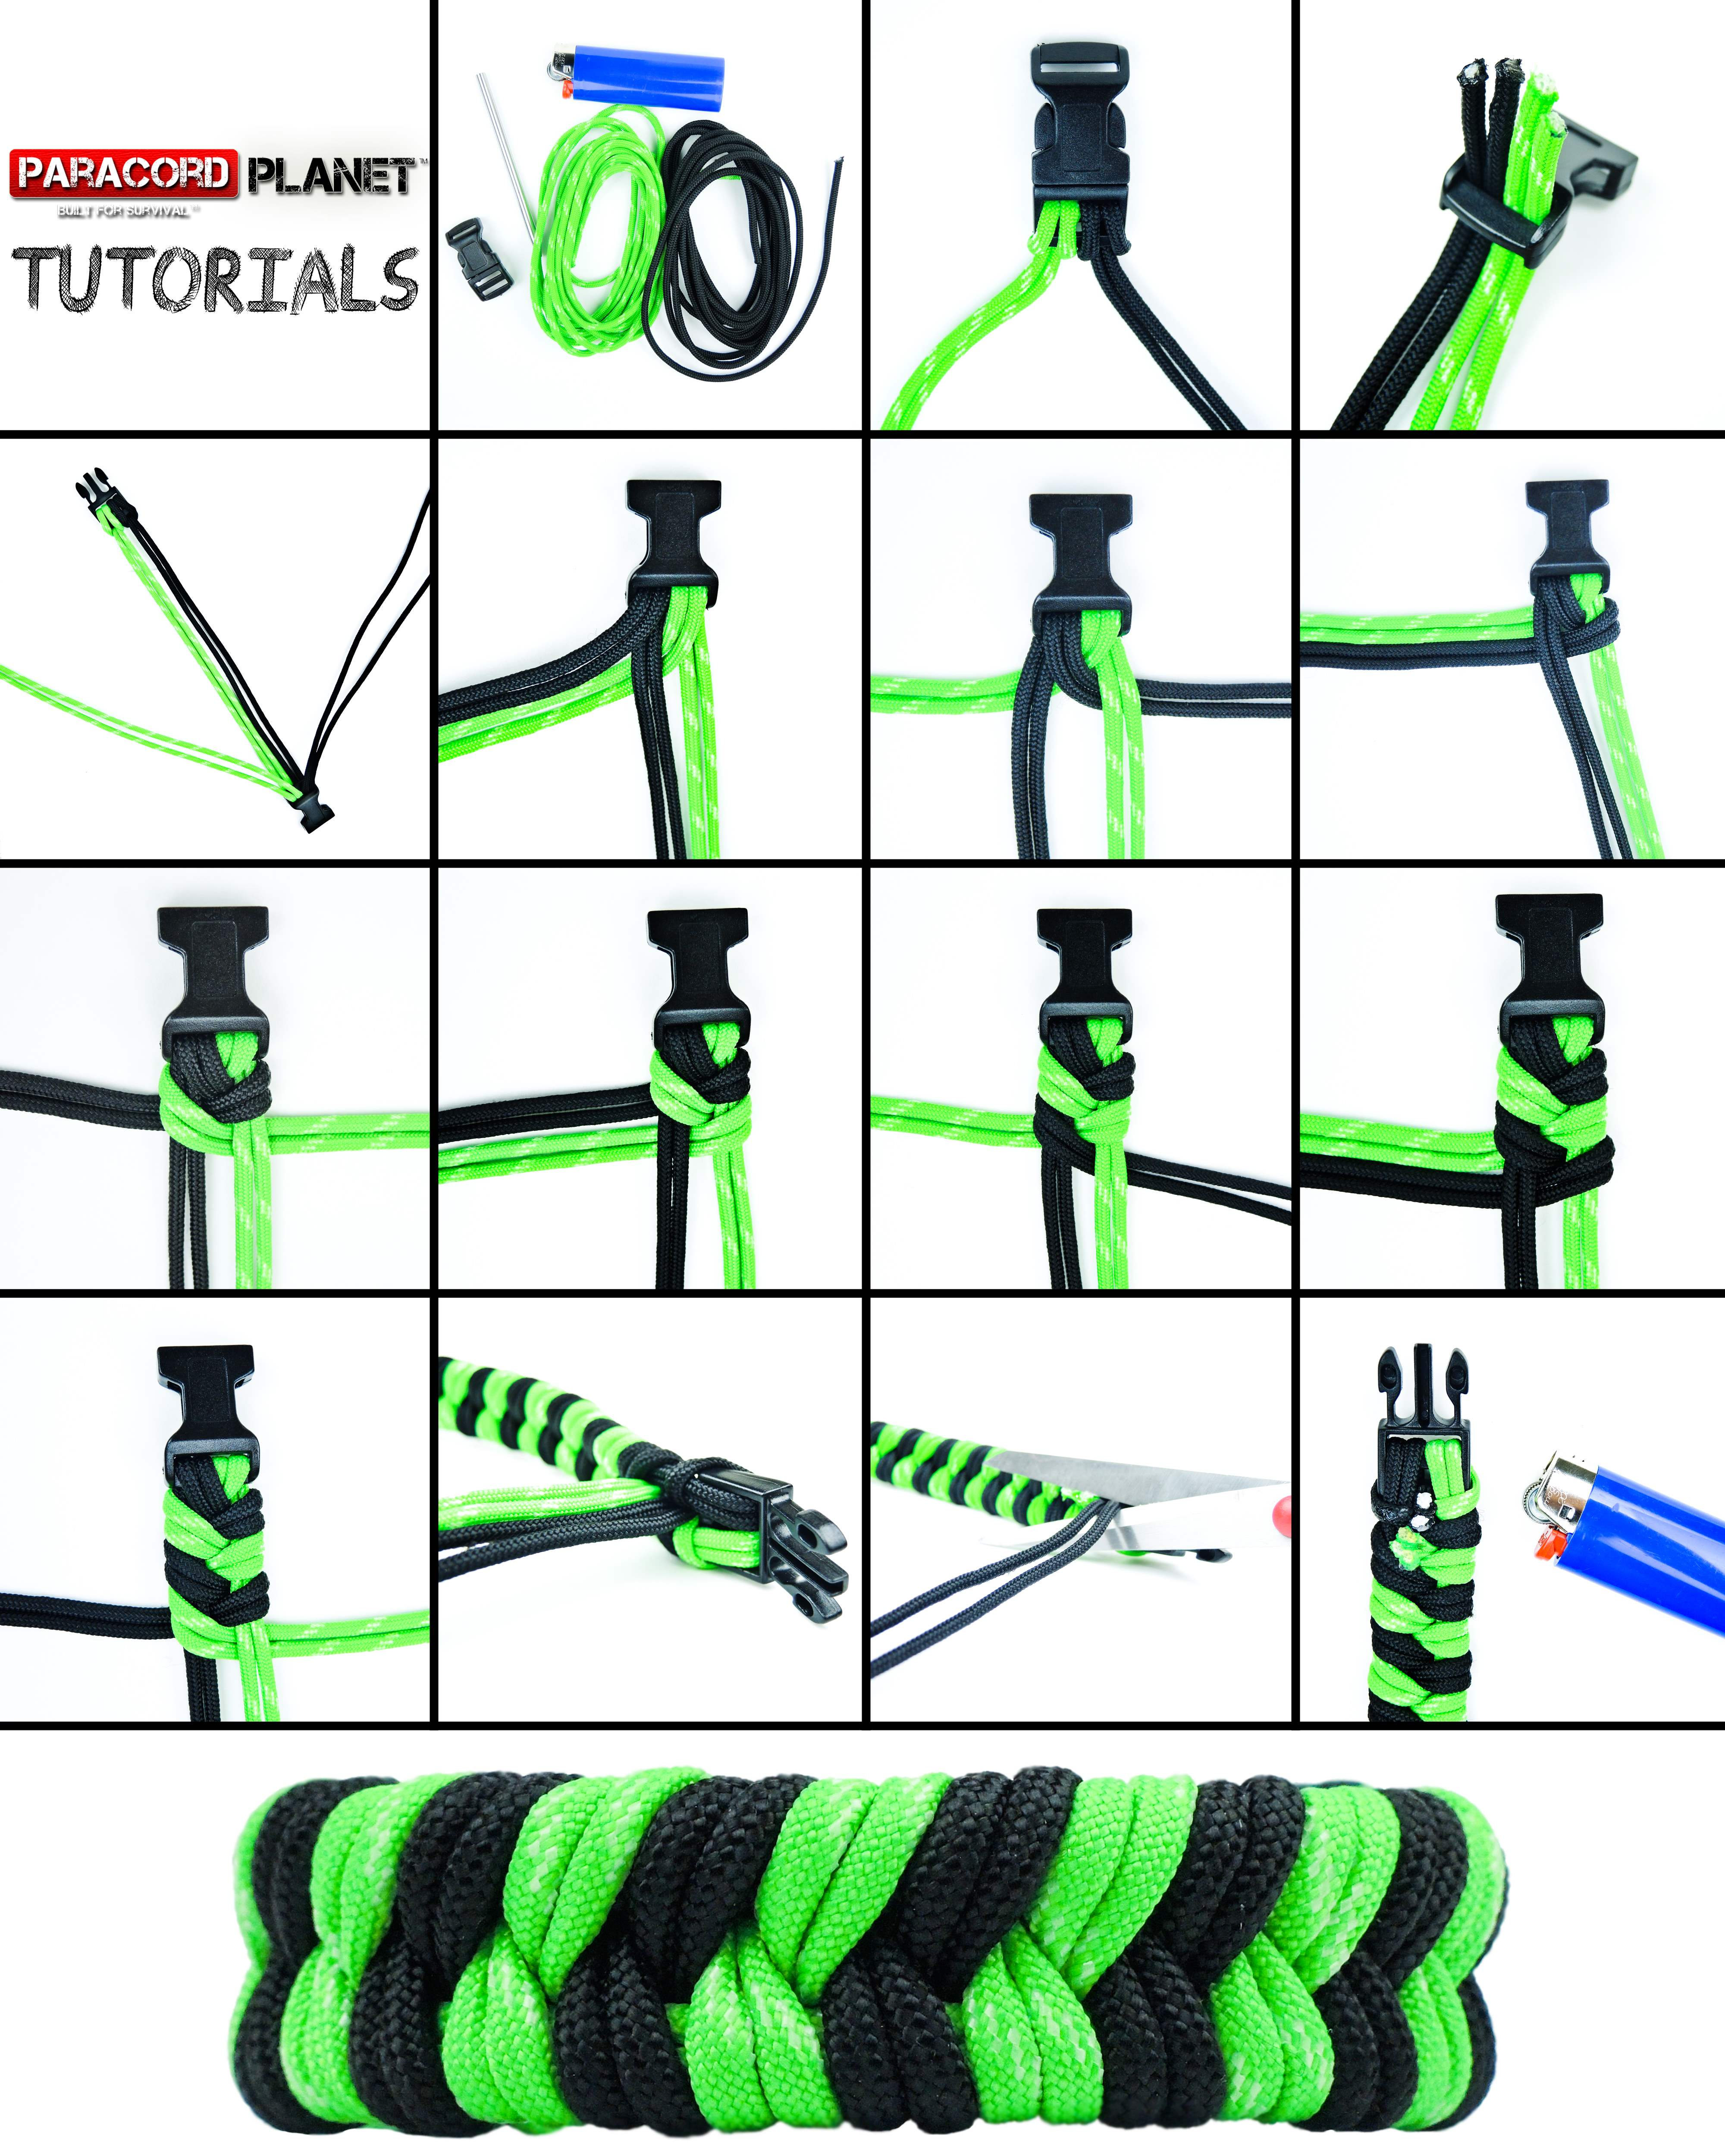 Double fishtail tutorial for How to make a paracord lanyard necklace